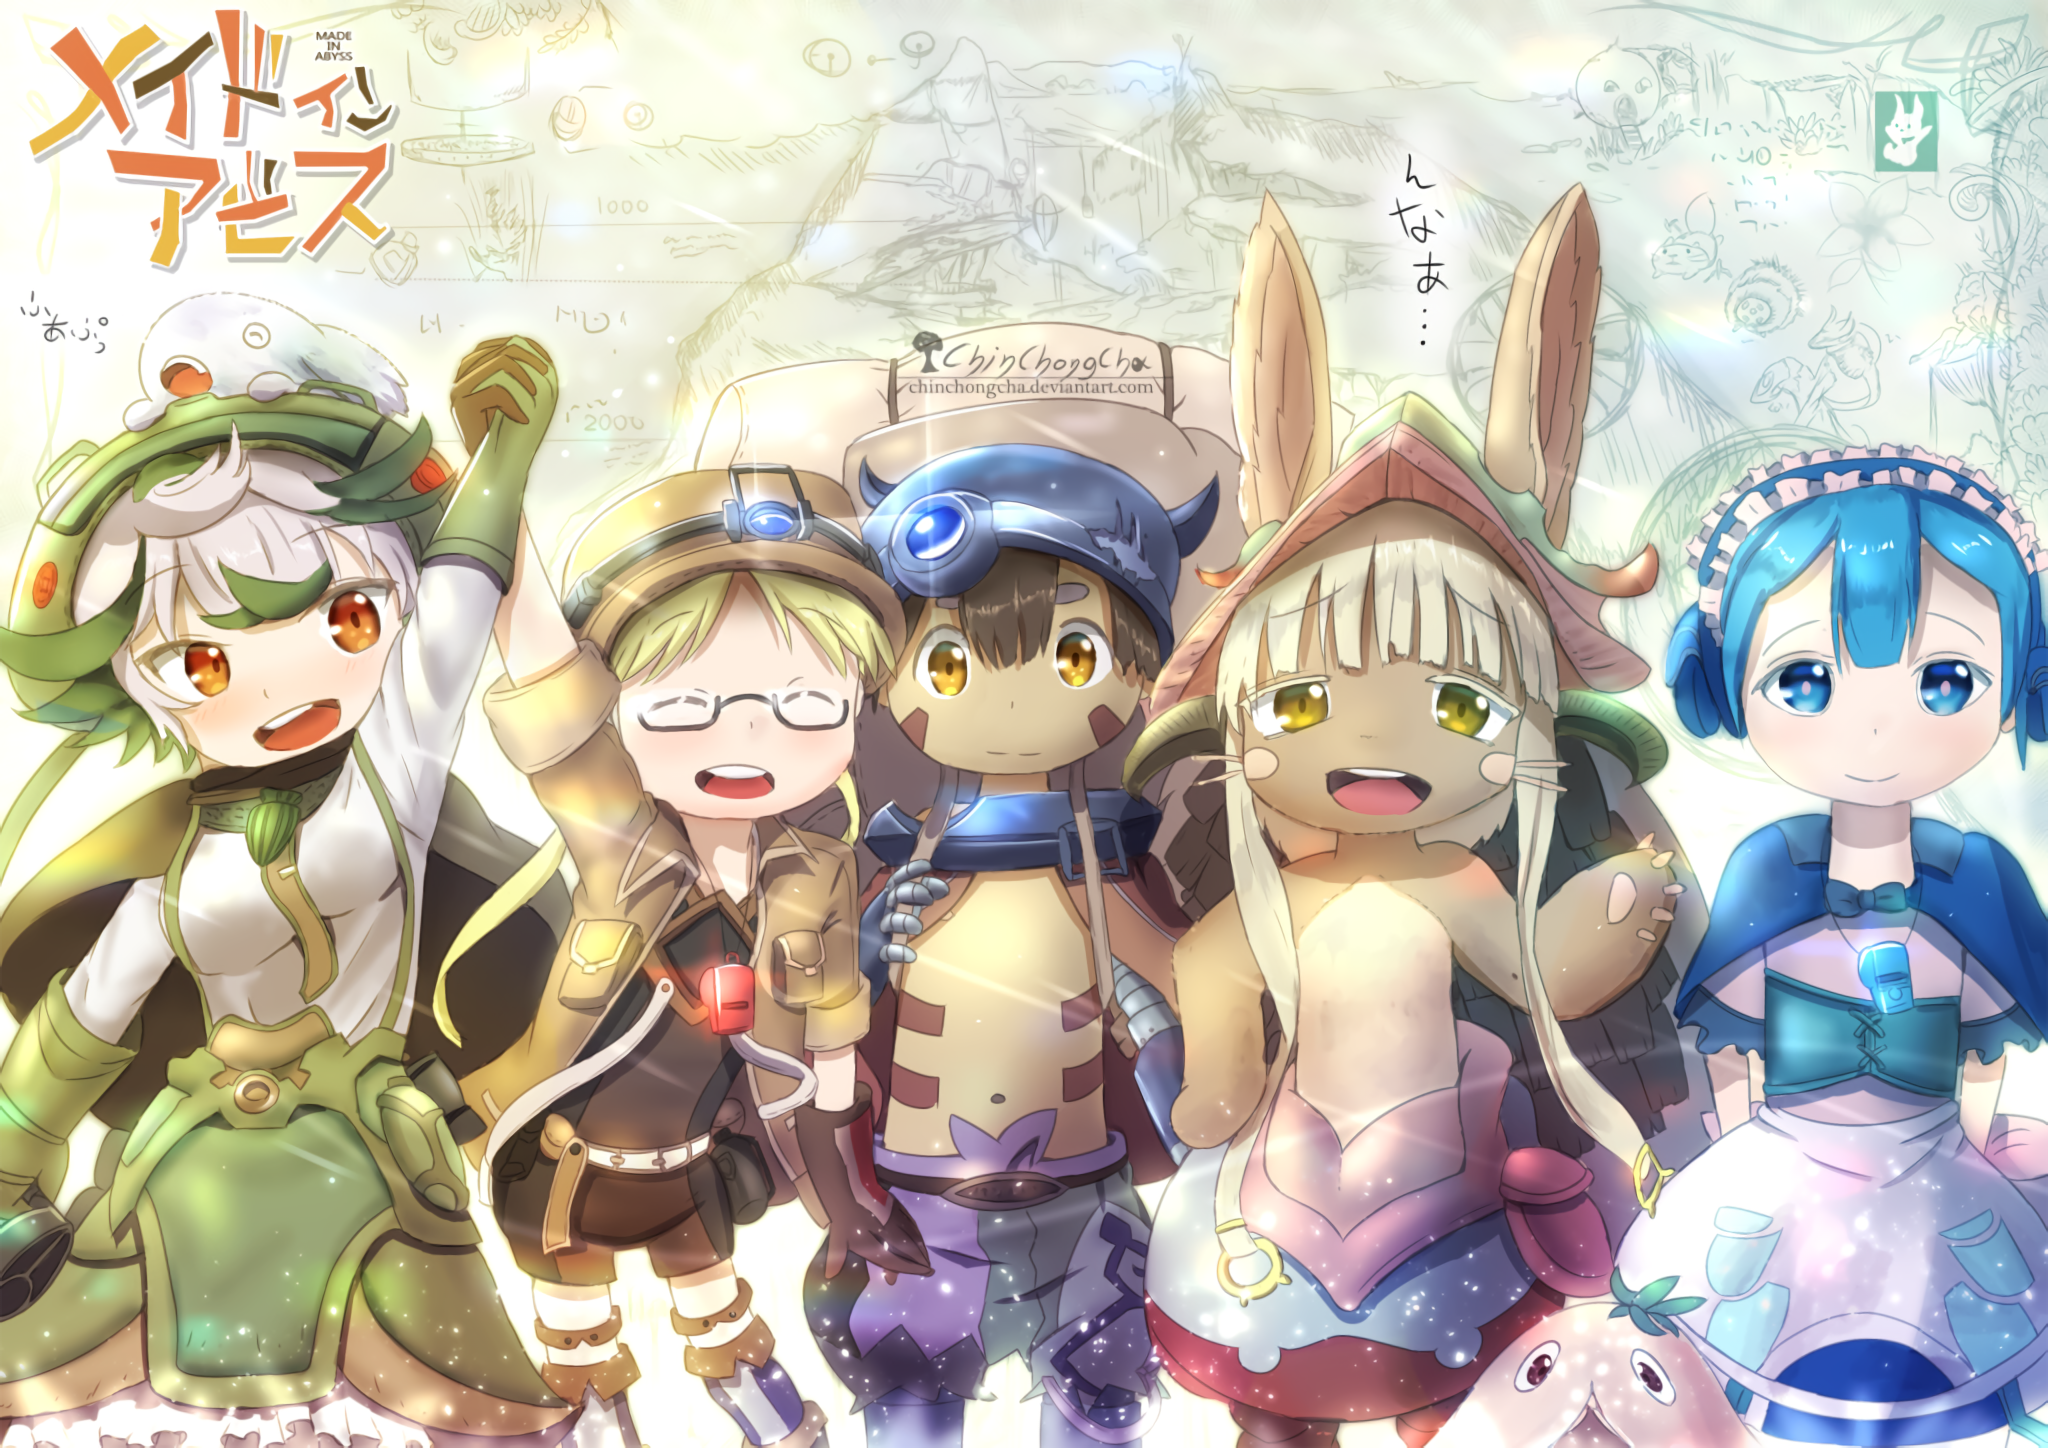 Made In Abyss HD Wallpaper  Background Image  2048x1448  ID:860634  Wallpaper Abyss